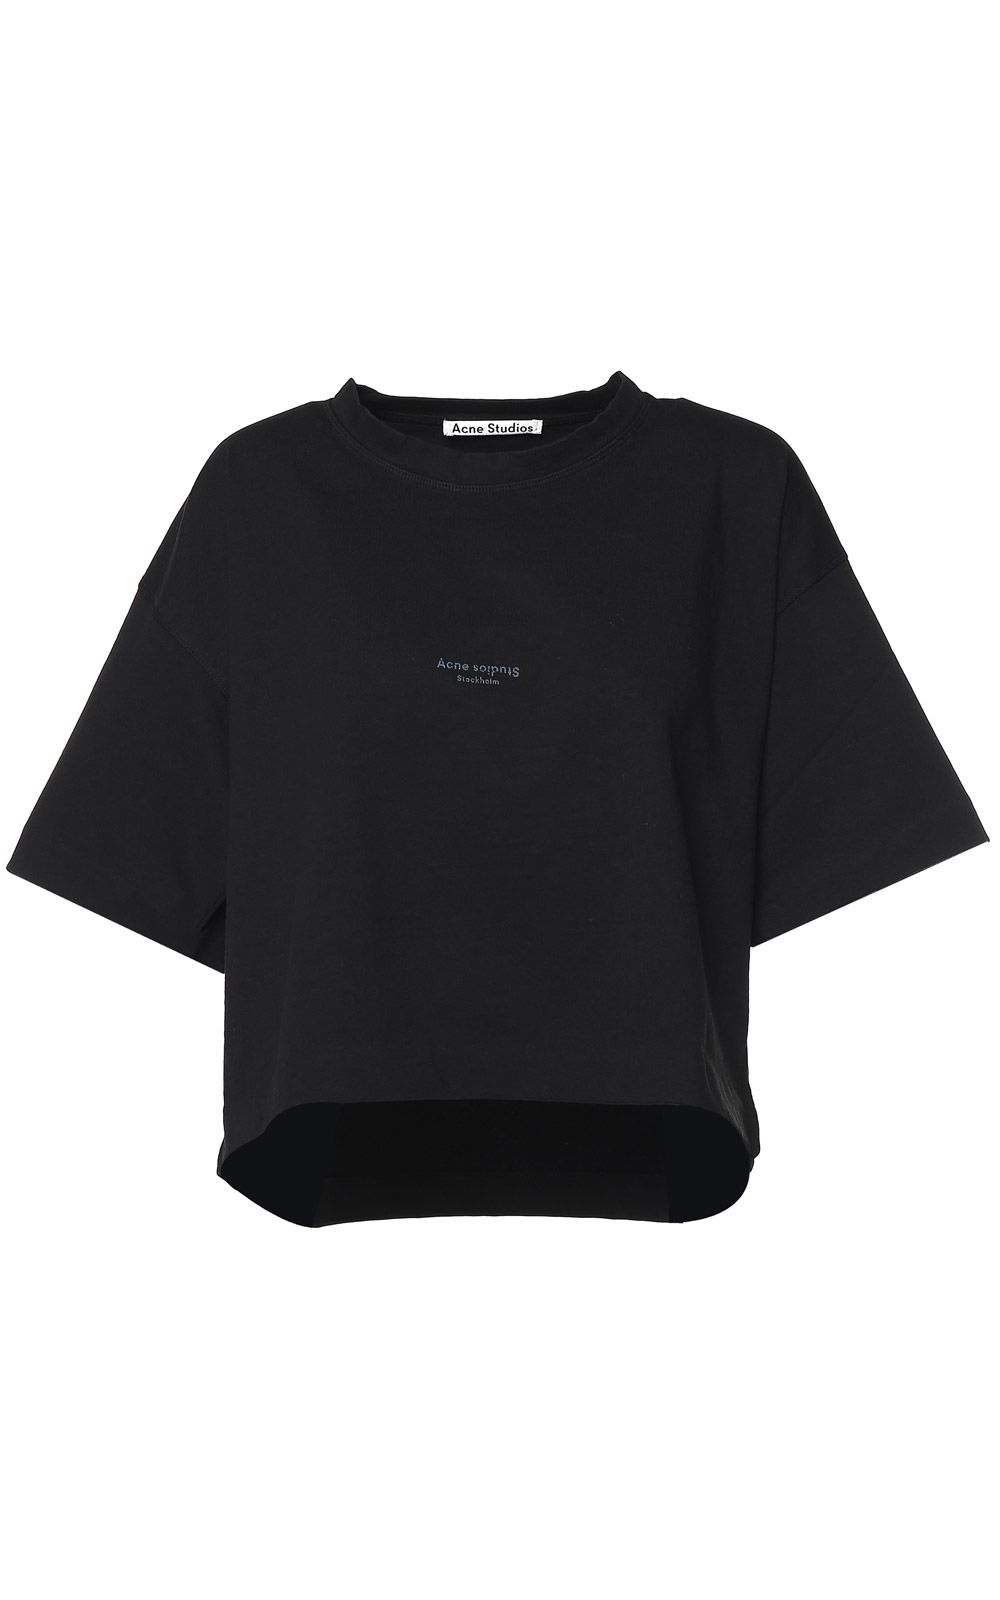 Acne Studios Cylea Cotton-jersey Cropped T-shirt